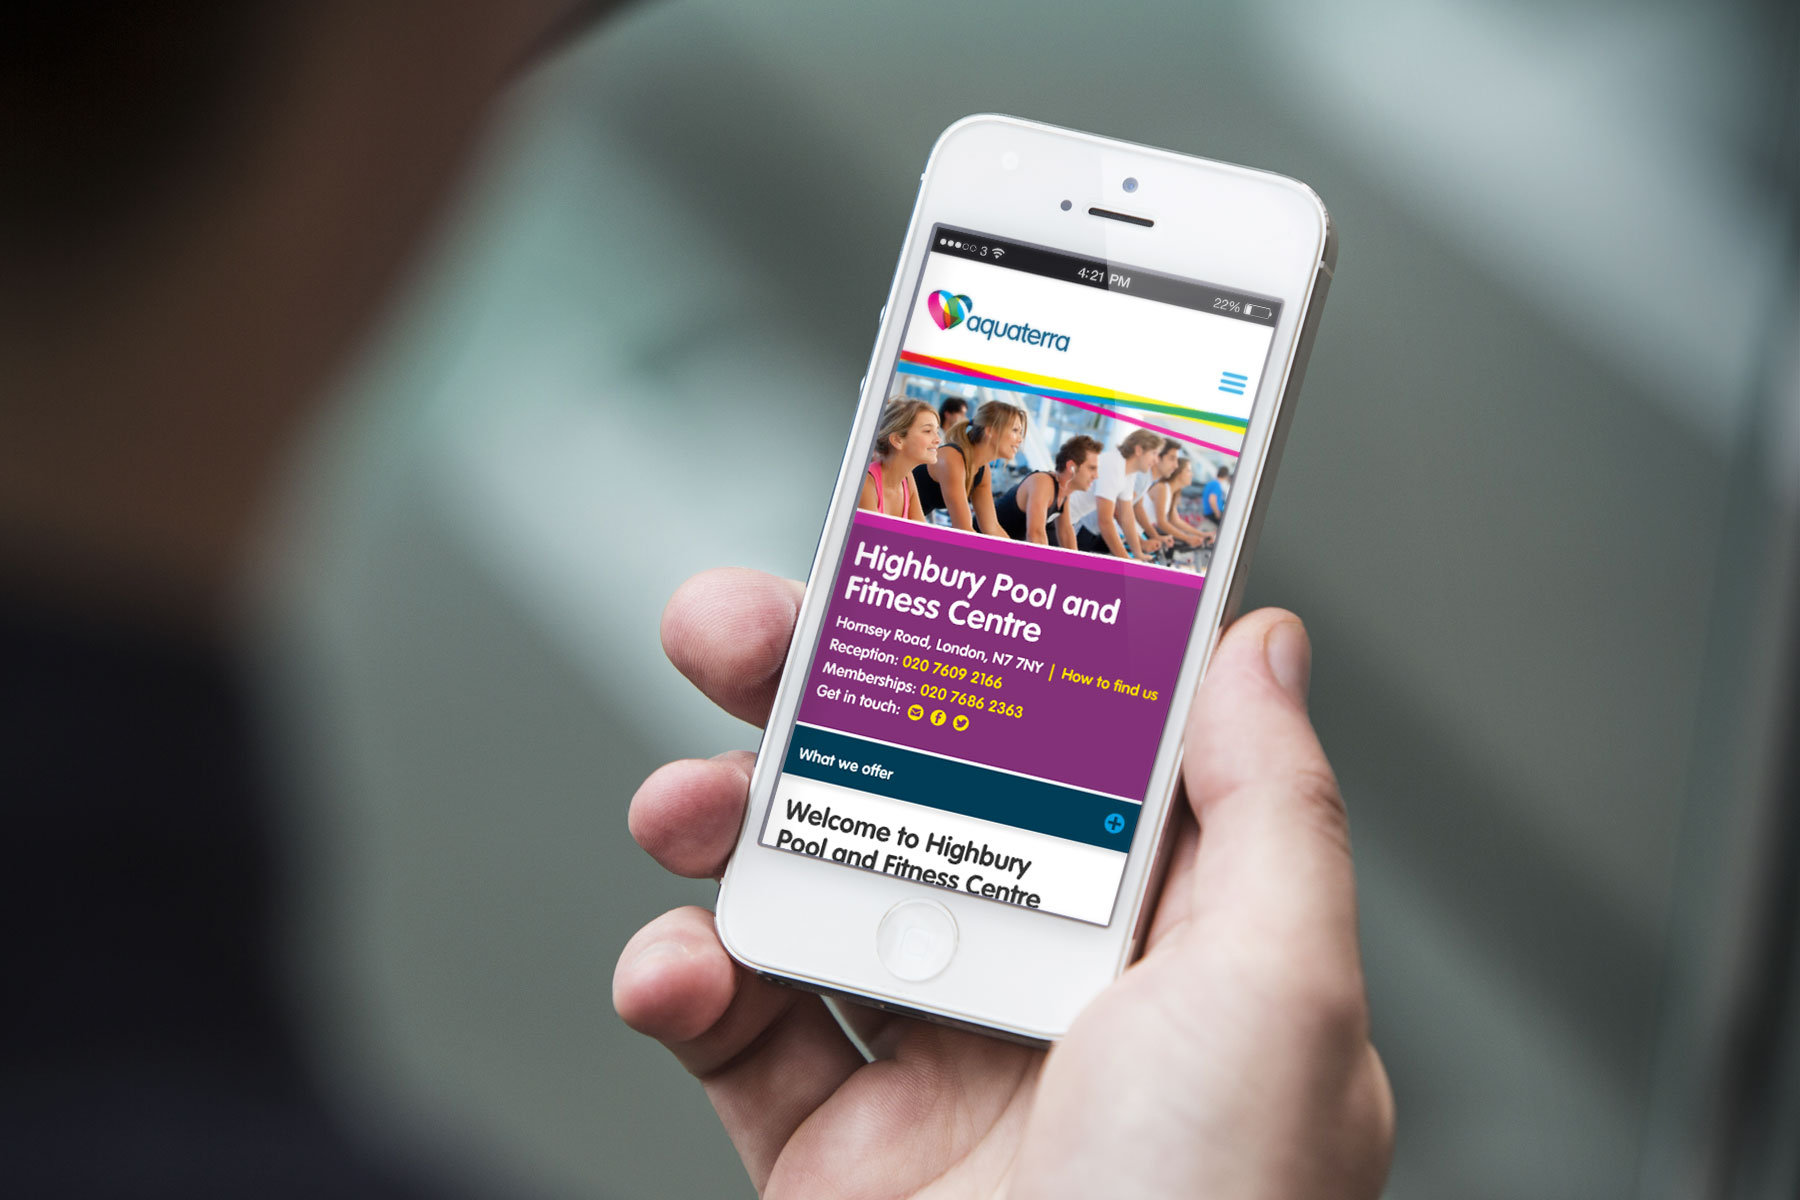 We adapted the responsive design right down to a single column layout so that mobile users could easily navigate the site without compromising on legibility of content